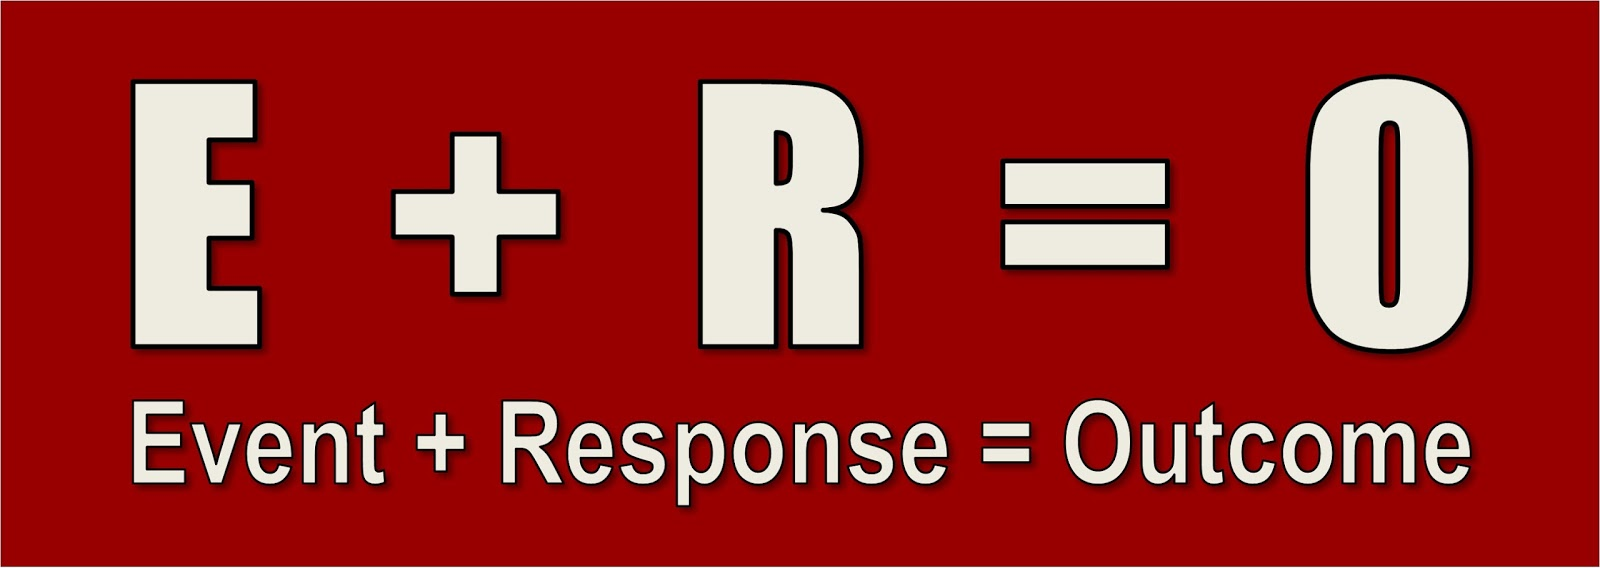 Image result for event + response = outcome